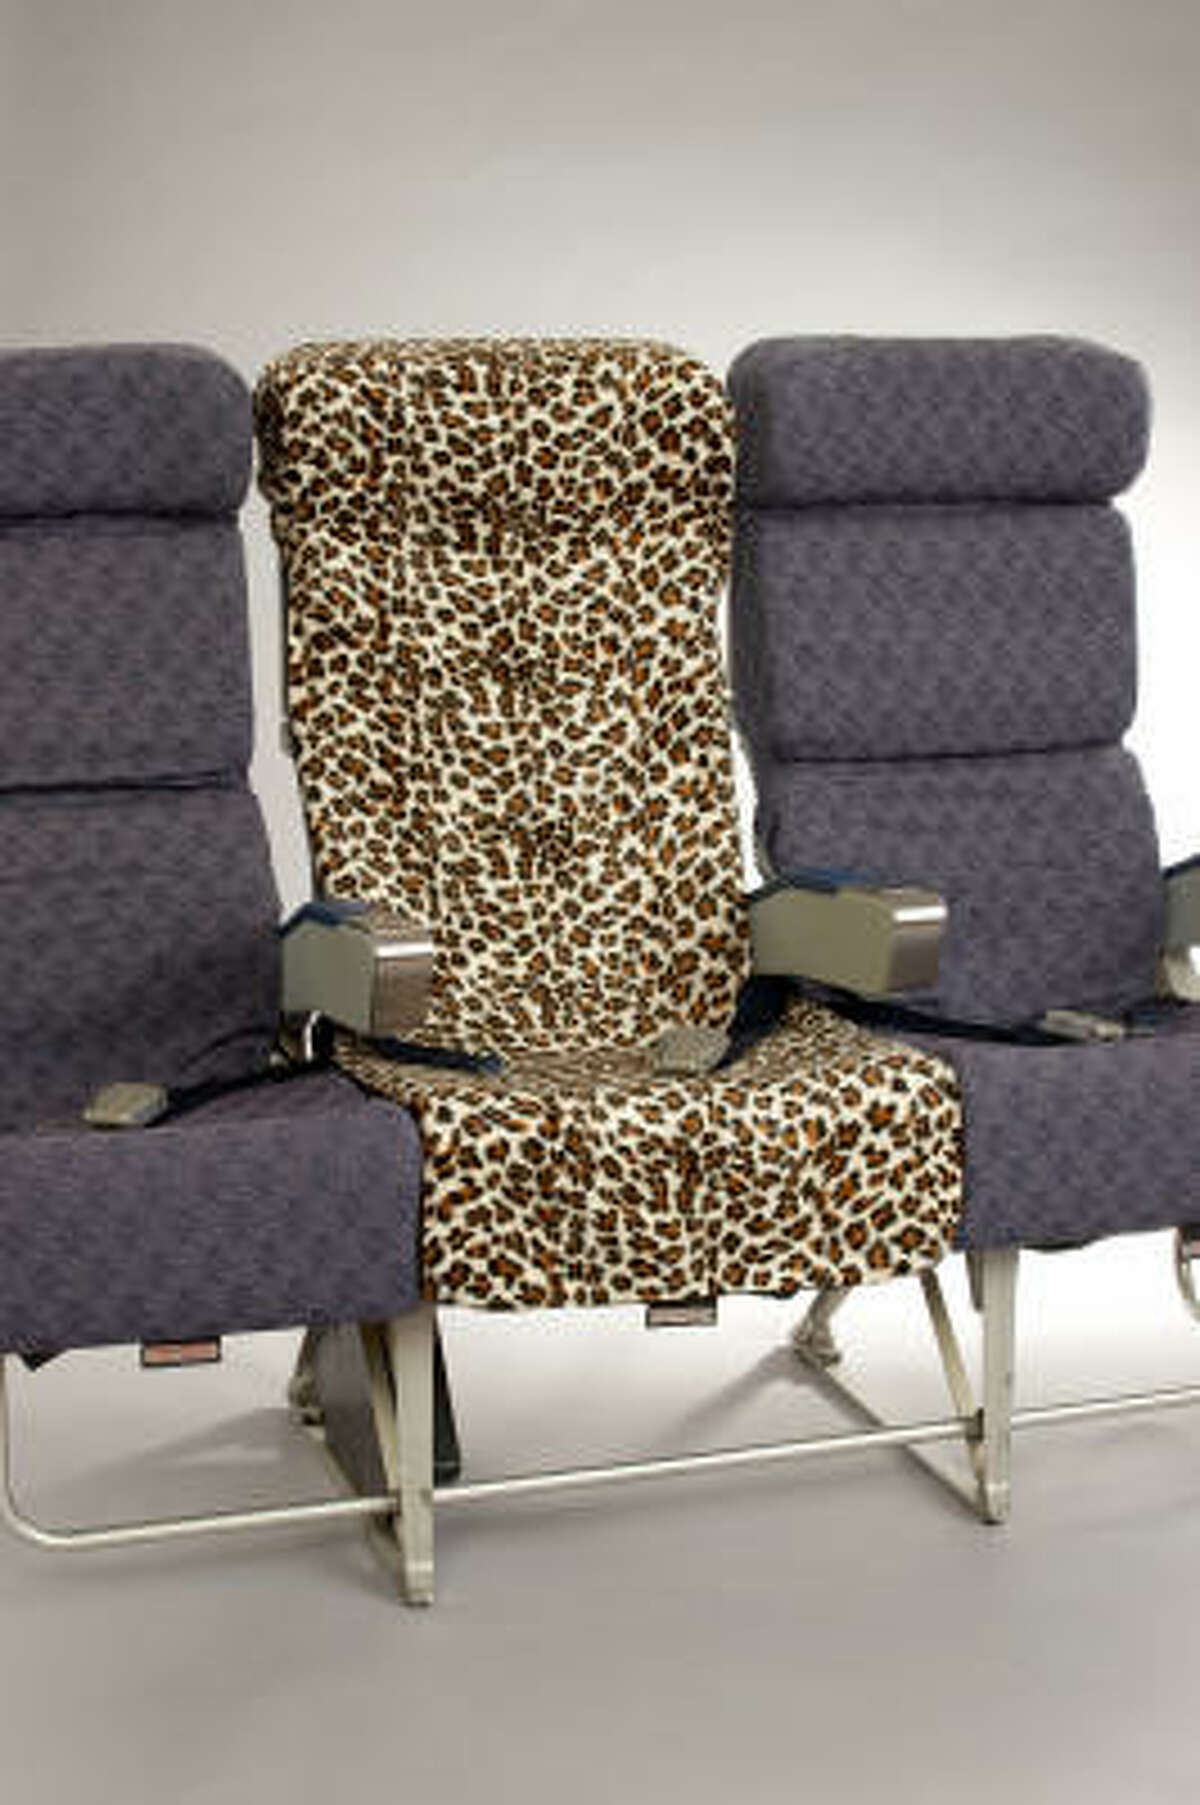 """The makers of PlaneSheets, which come in denim, leopard and camouflage prints, claim they transform """"a tired, overused airline seat into a cozy, happy place."""""""